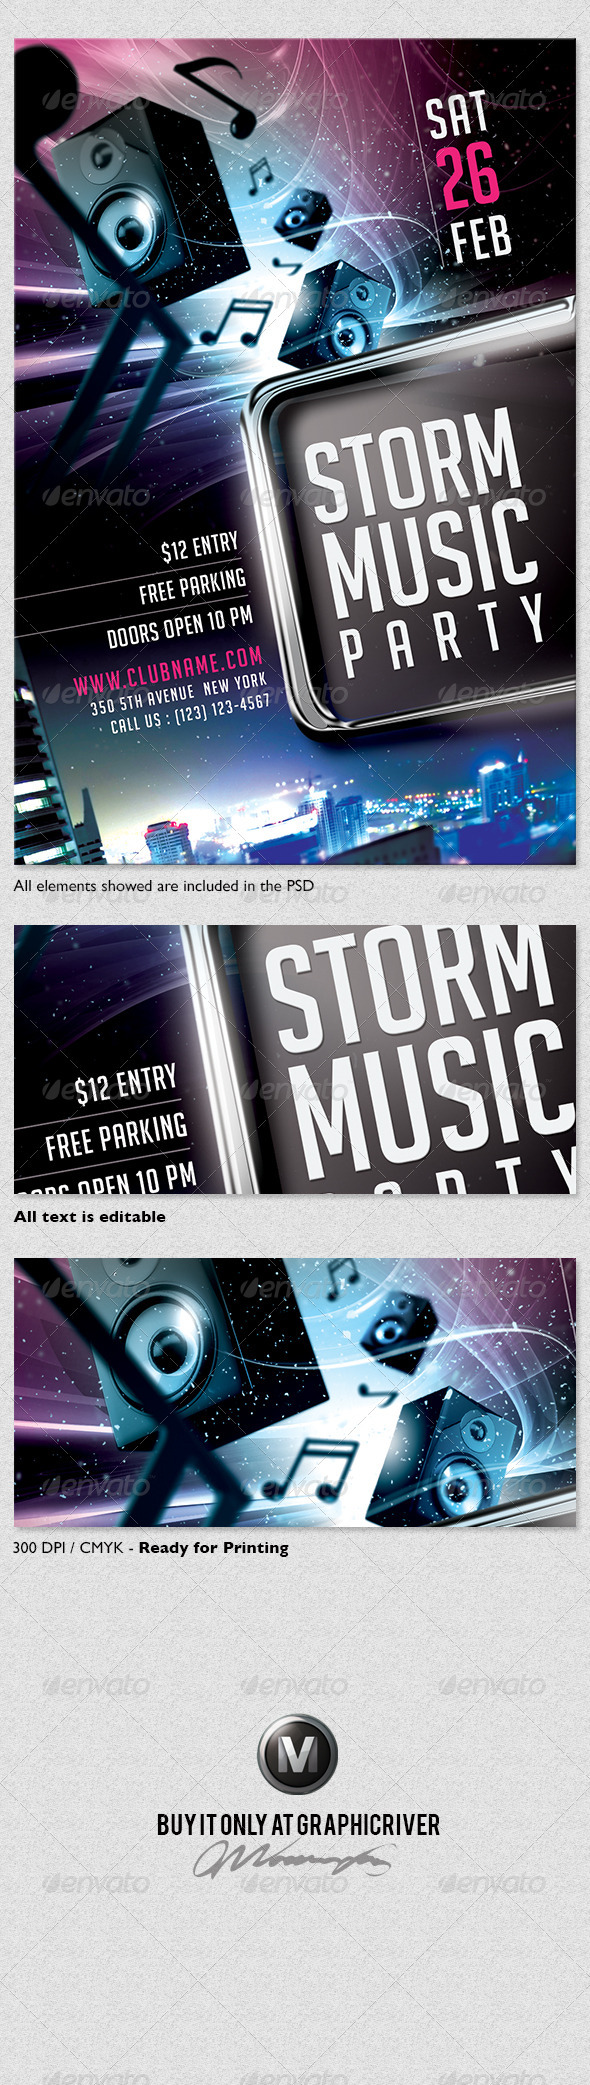 Storm Music Flyer Template - Clubs & Parties Events